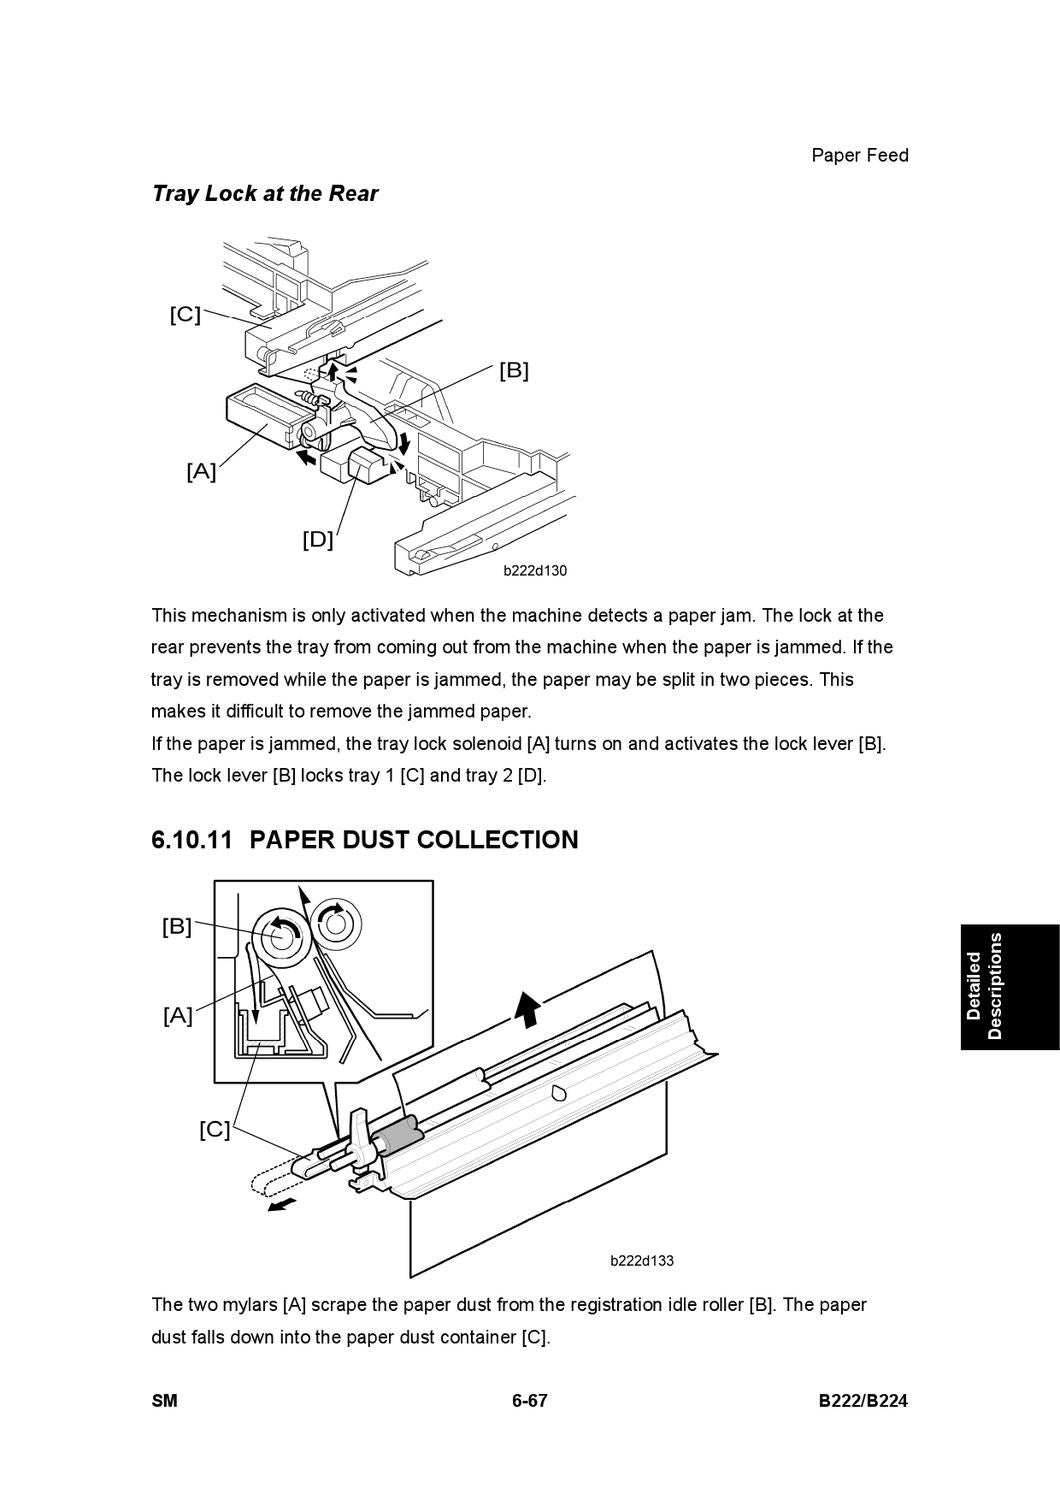 Mpc3500 4500 3 Parte By Melandier Ospina Issuu 2x5 1394 6 Pin Wiring Diagram